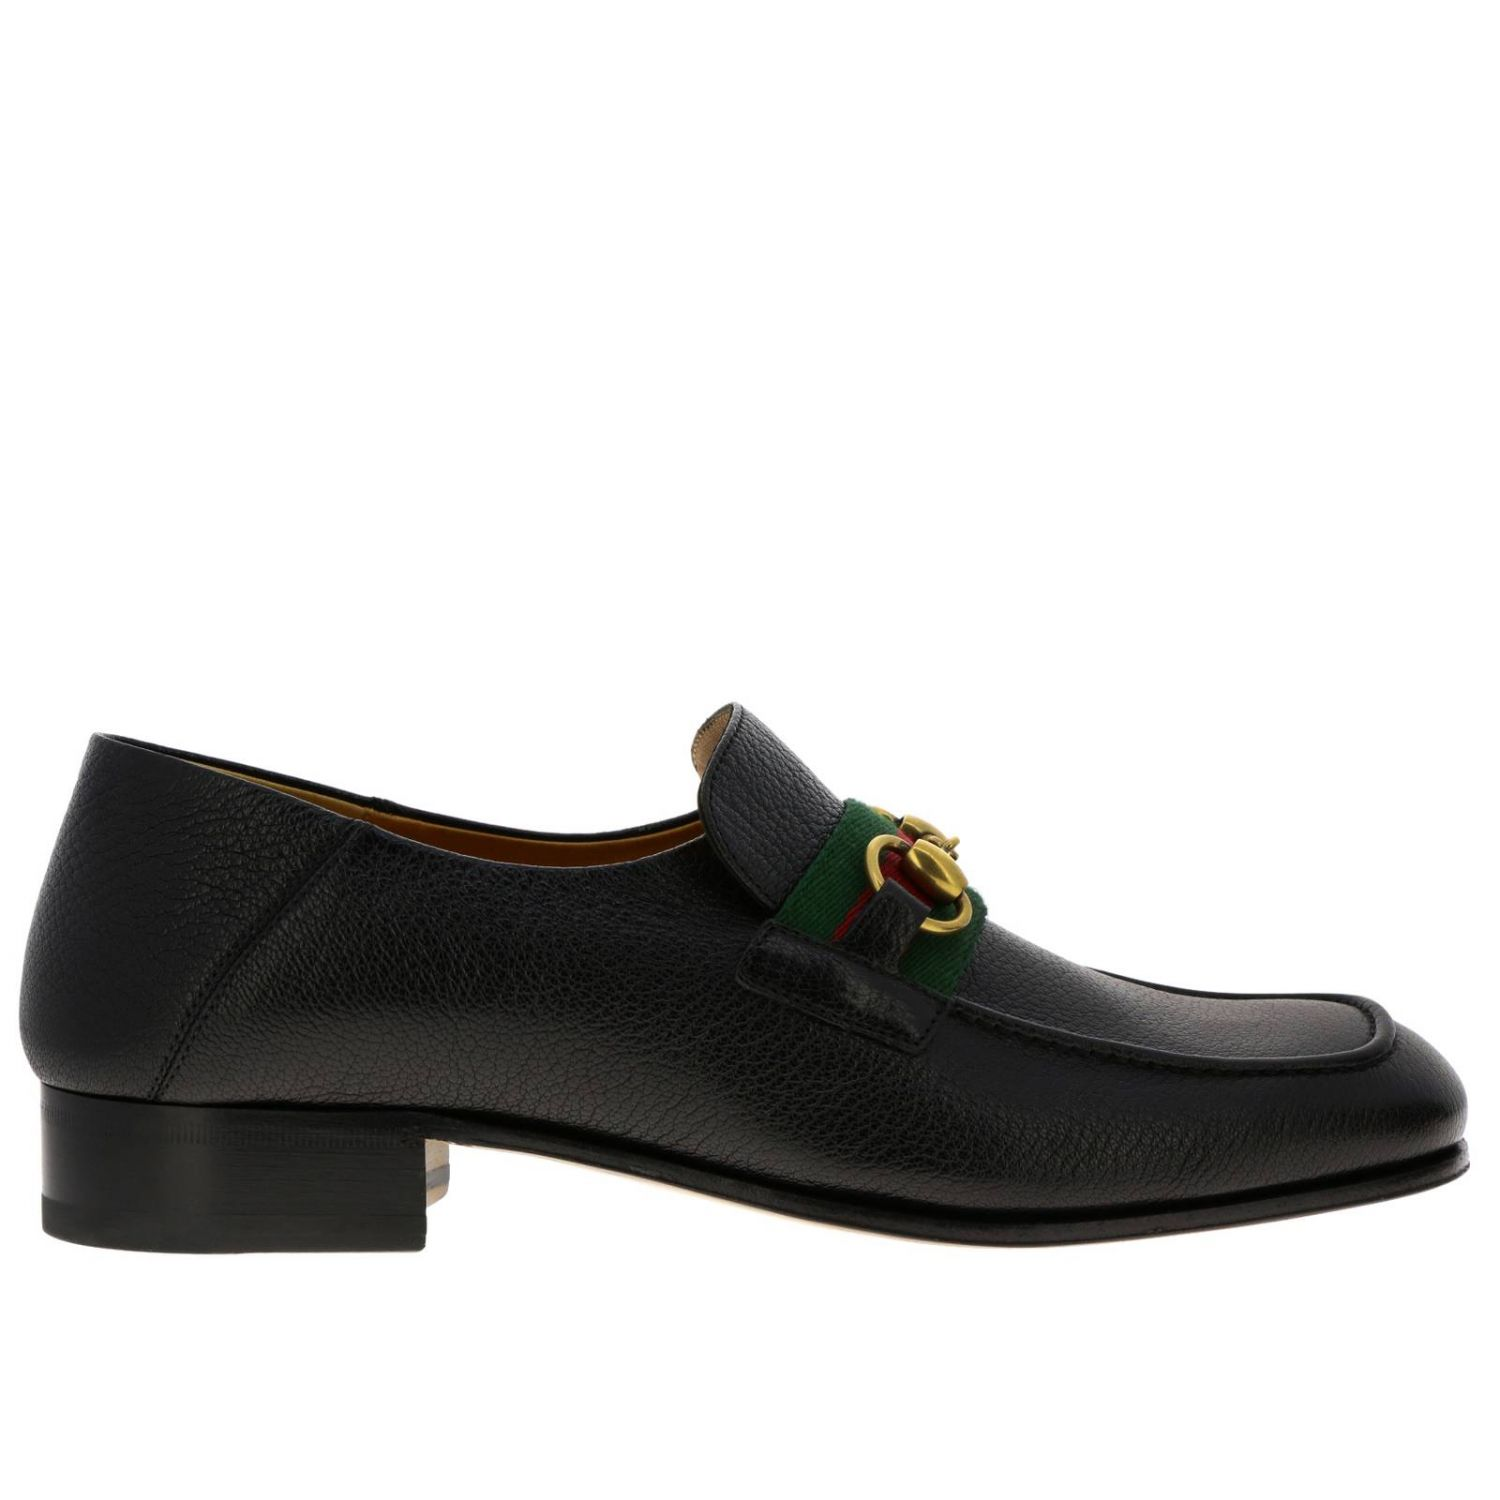 Mocassino Bonny in vera pelle soft con morsetto metallico e fascia Web Gucci nero 1